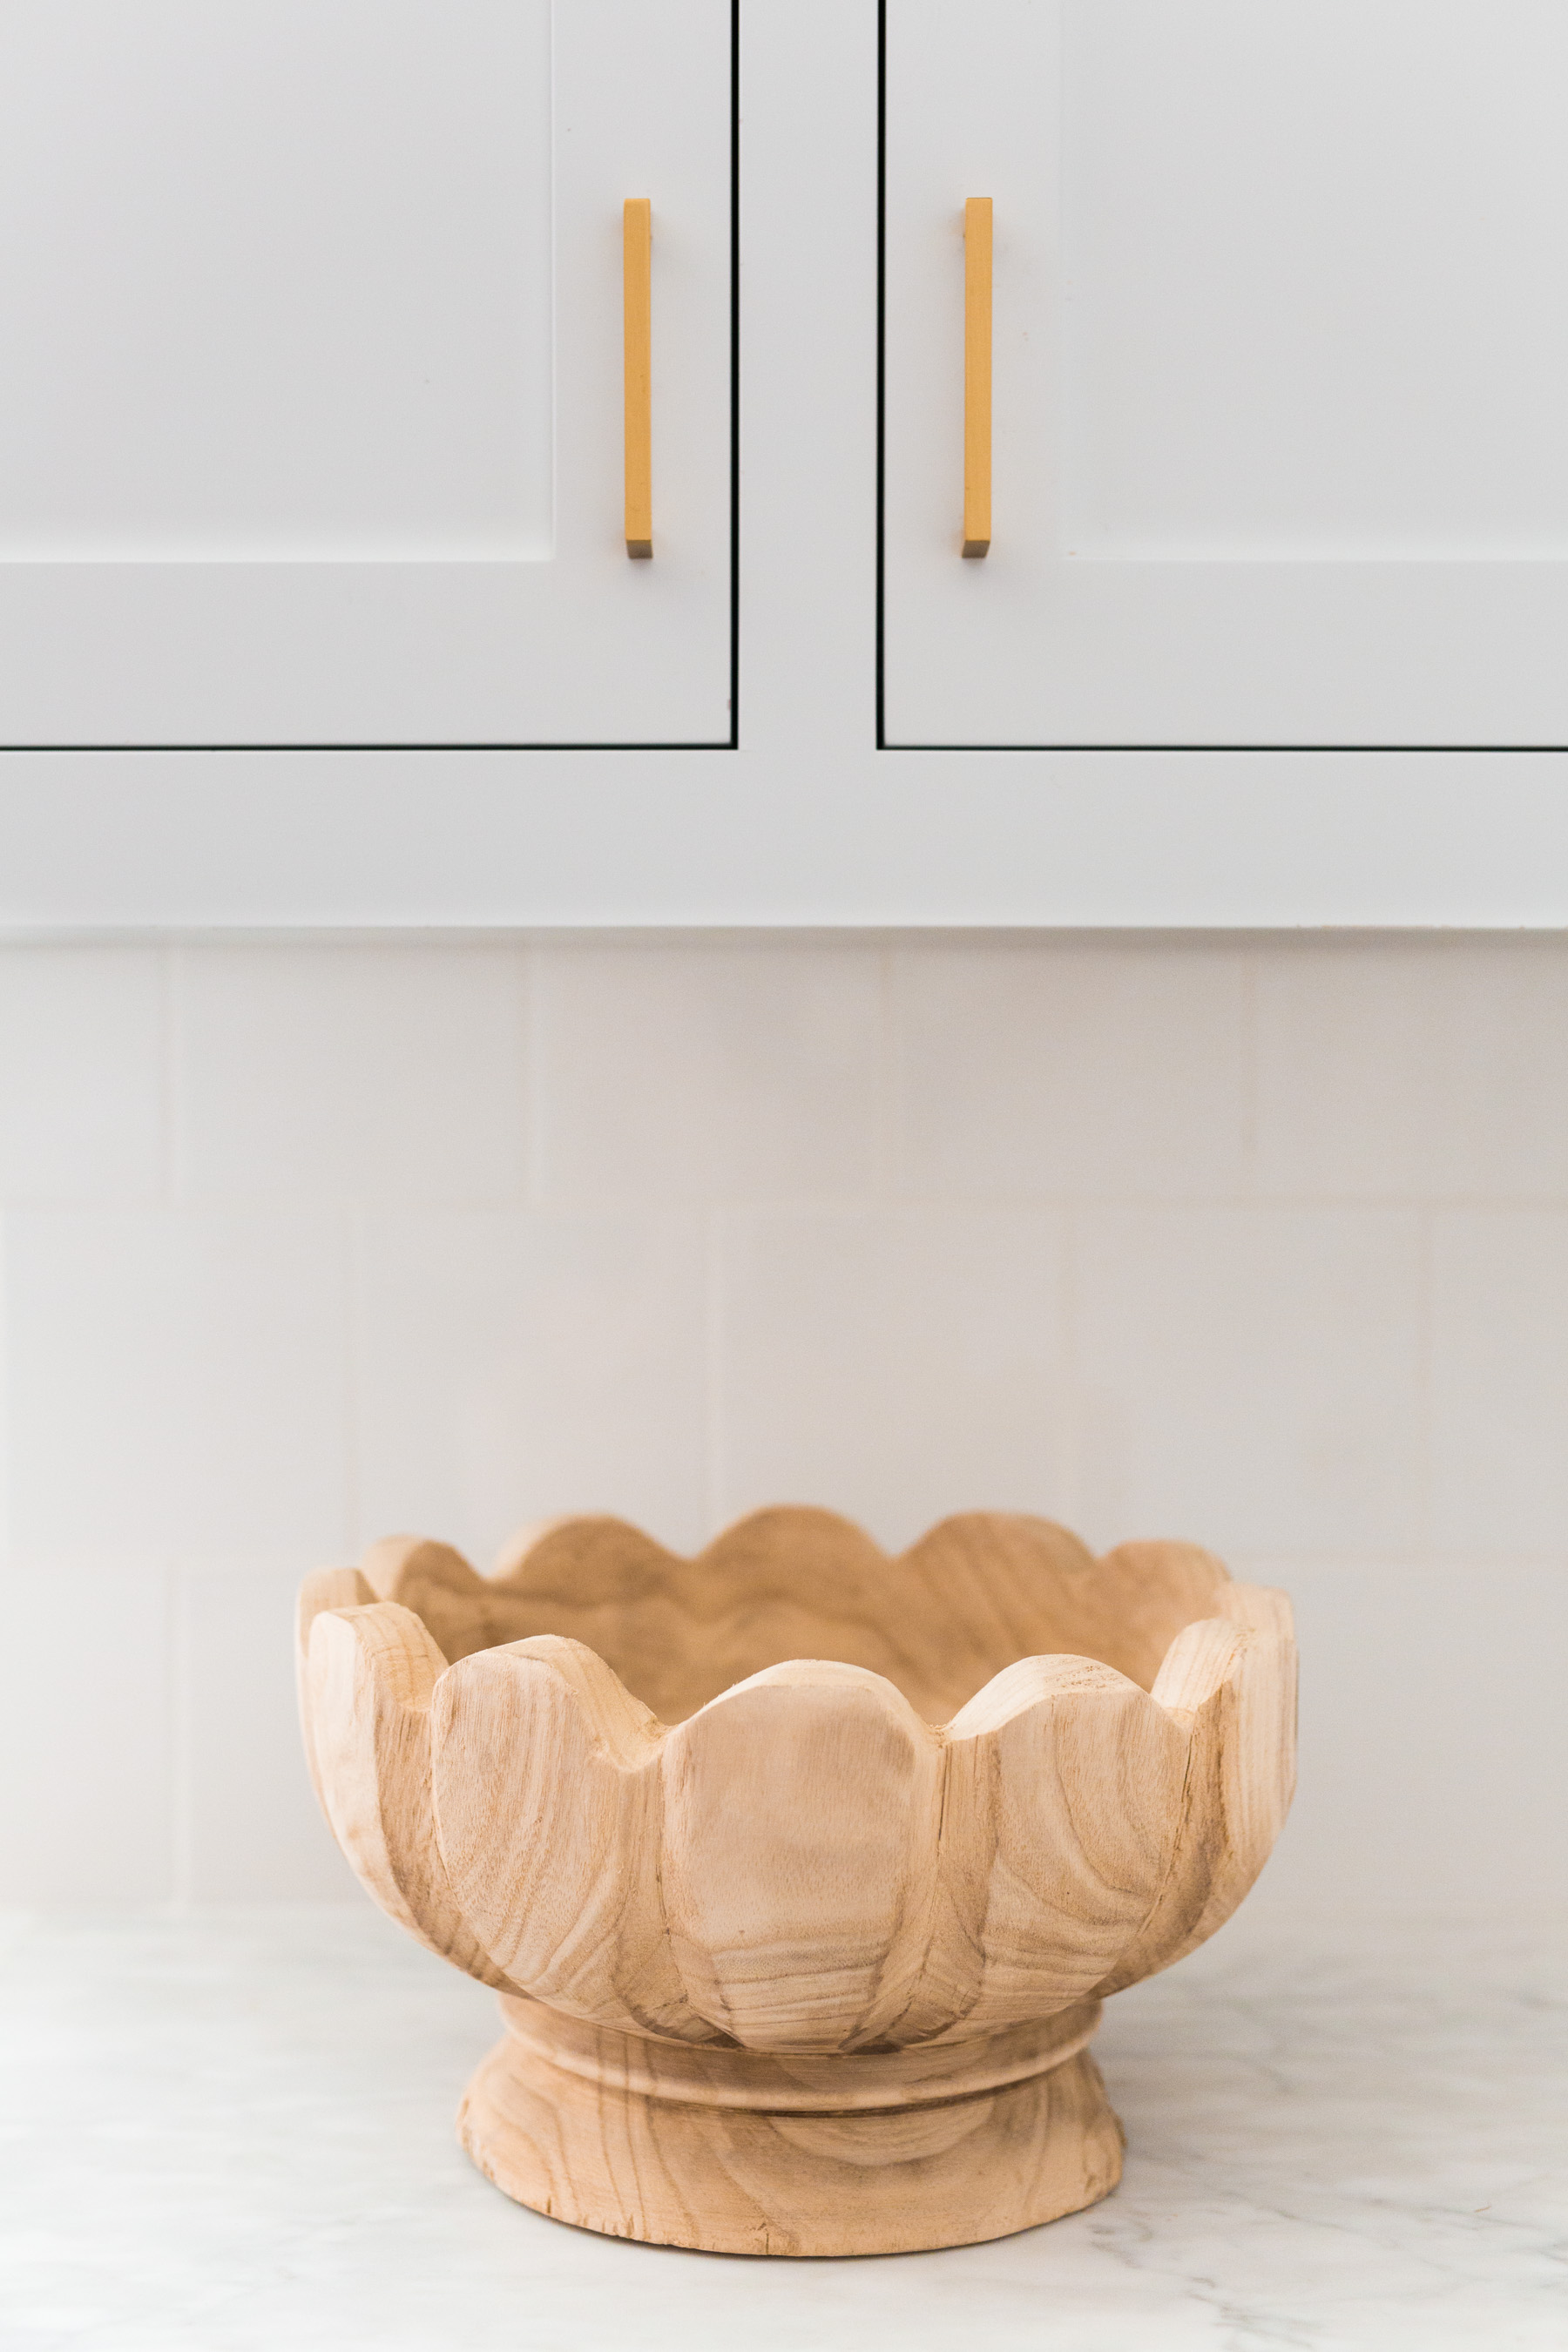 McGee & Co. Wooden Lotus Bowl